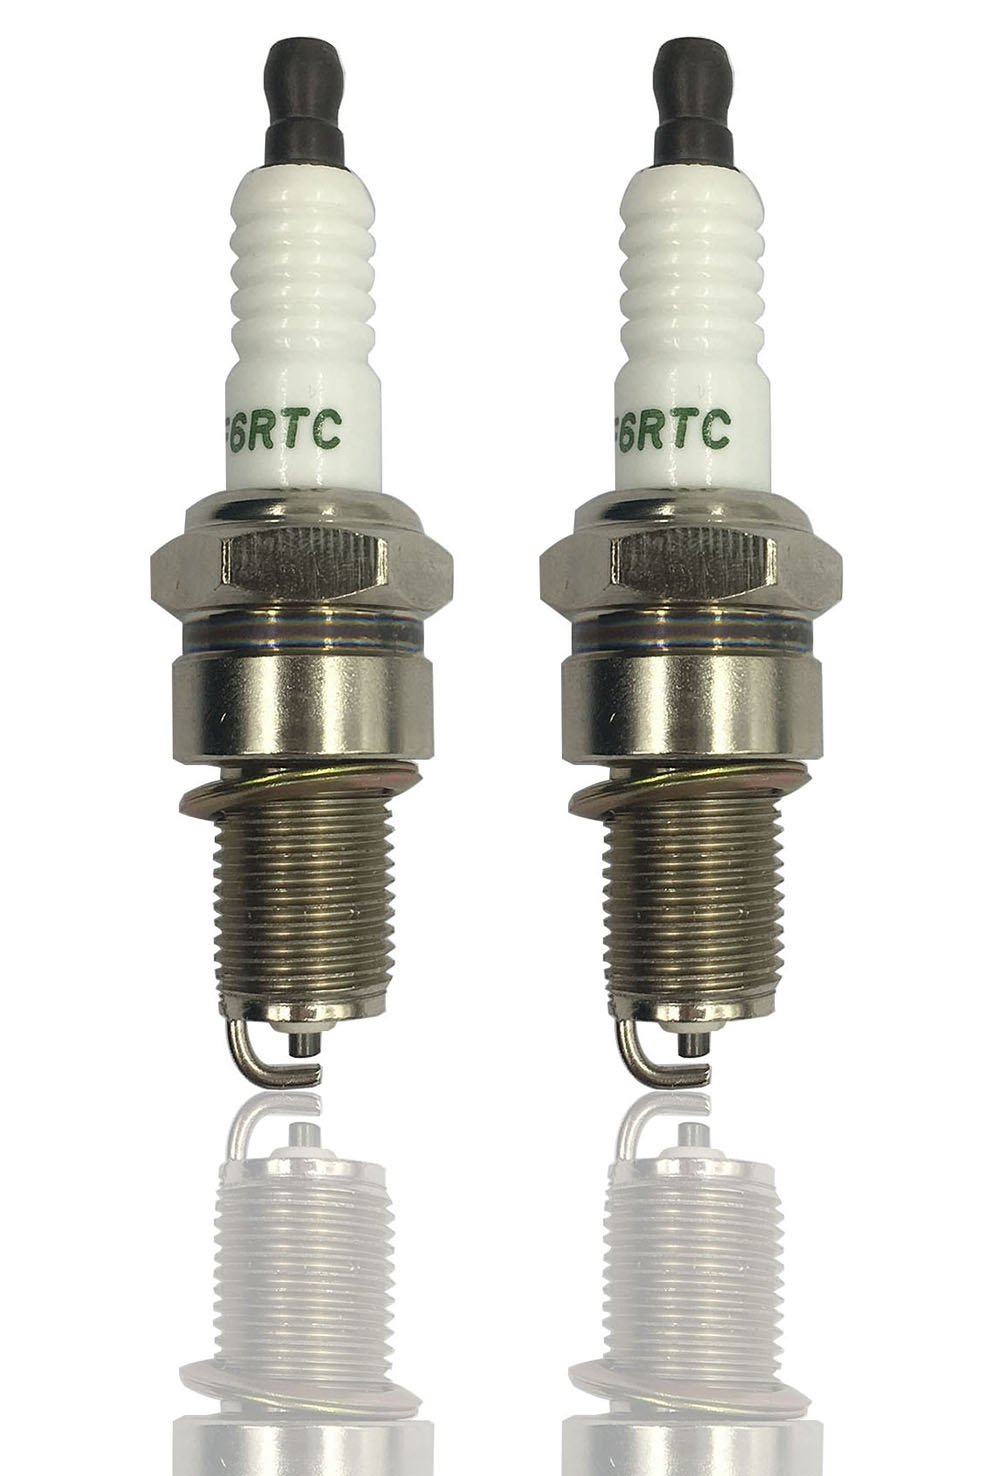 2 Pack Stens 131-039-2pk Spark Plug Replaces Torch F6RTC MTD 751-10292